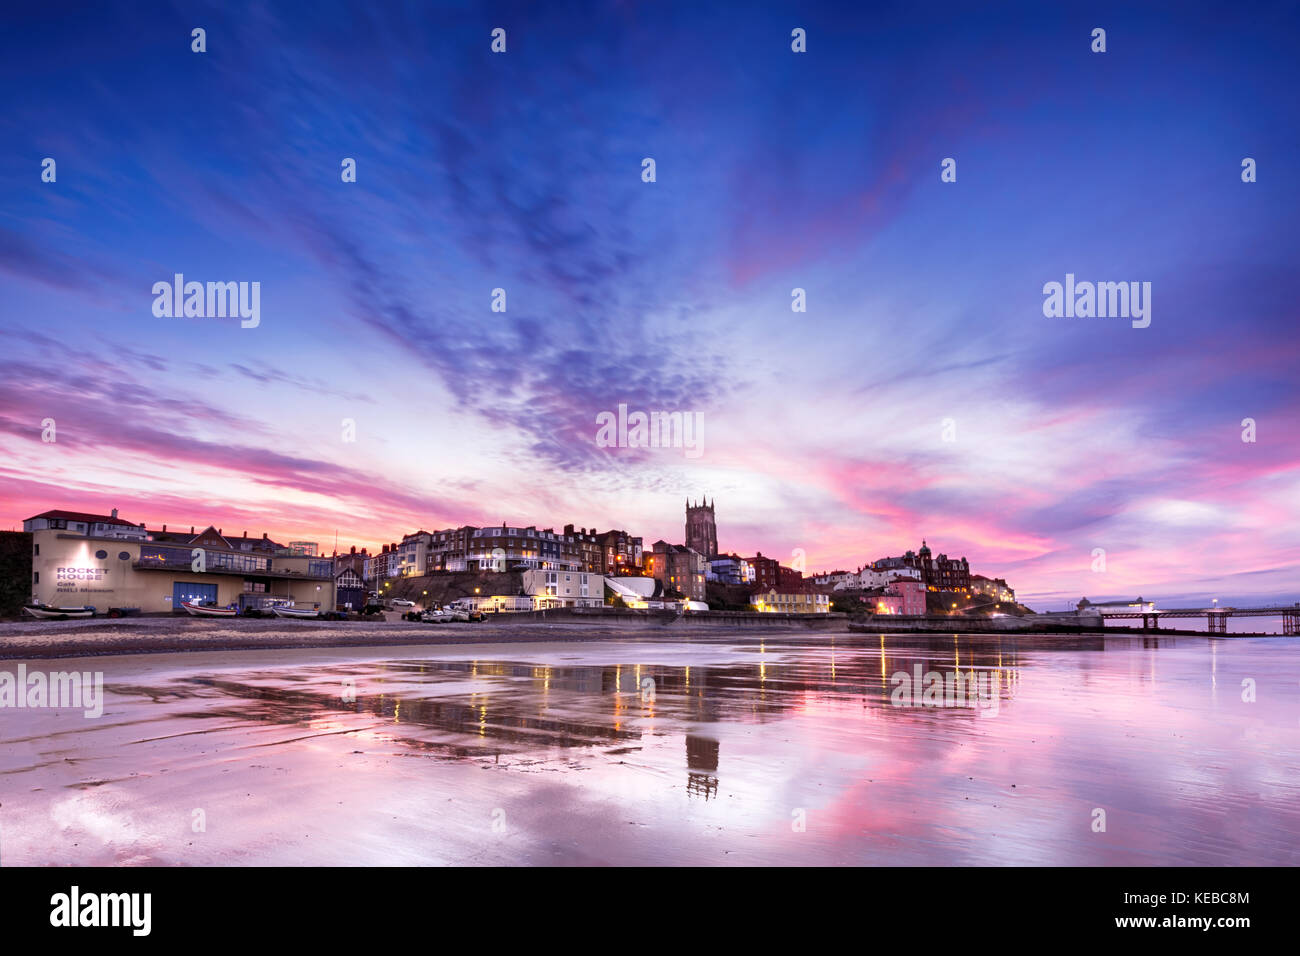 Cromer In Pink - Panoramic view of British seaside town of Comer. Fantastic sunset colours of pinks and purples Stock Photo